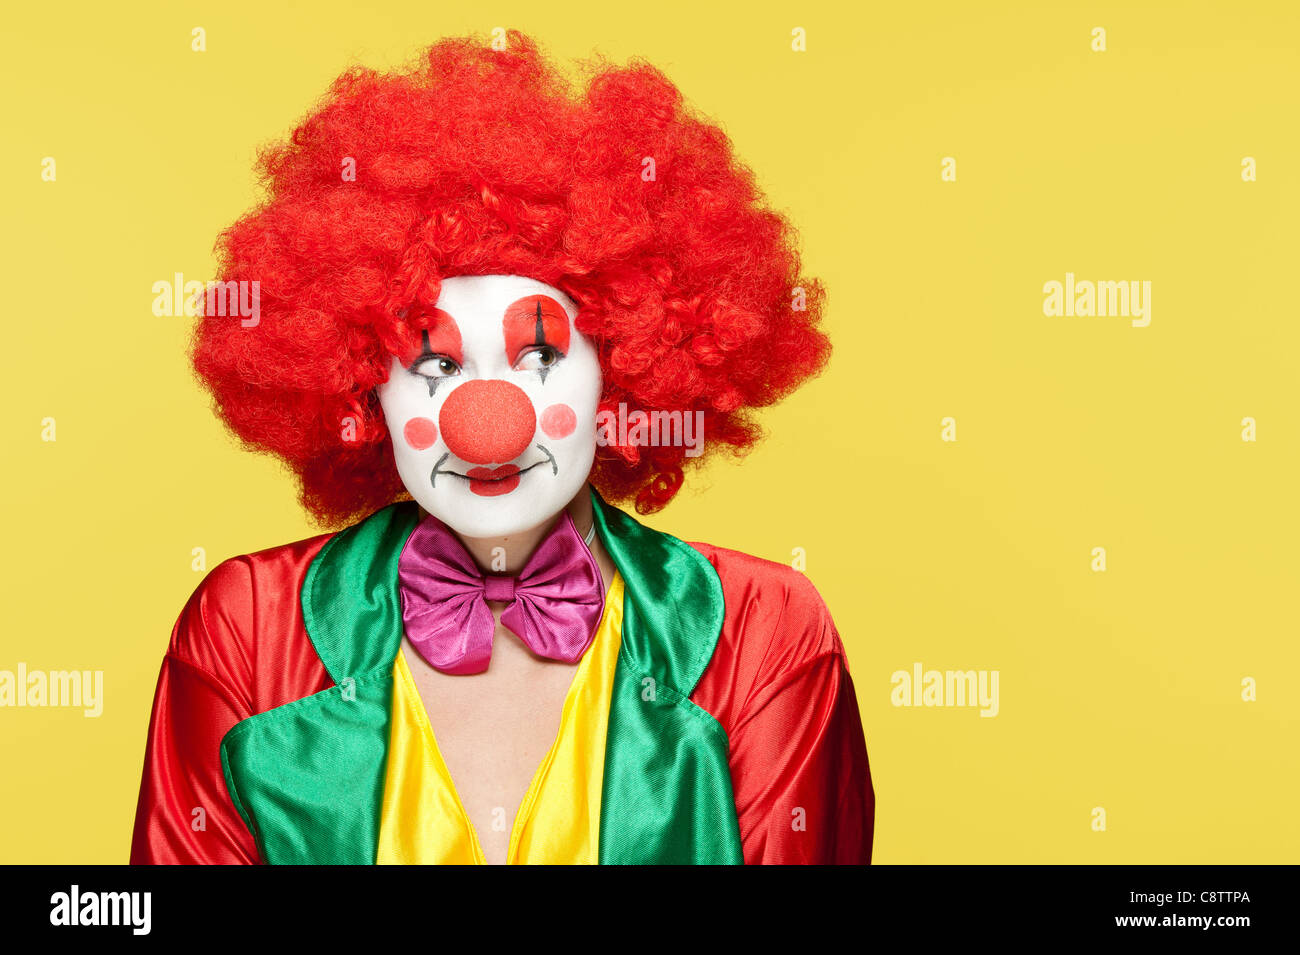 a female clown with colorful clothes and makeup - Stock Image